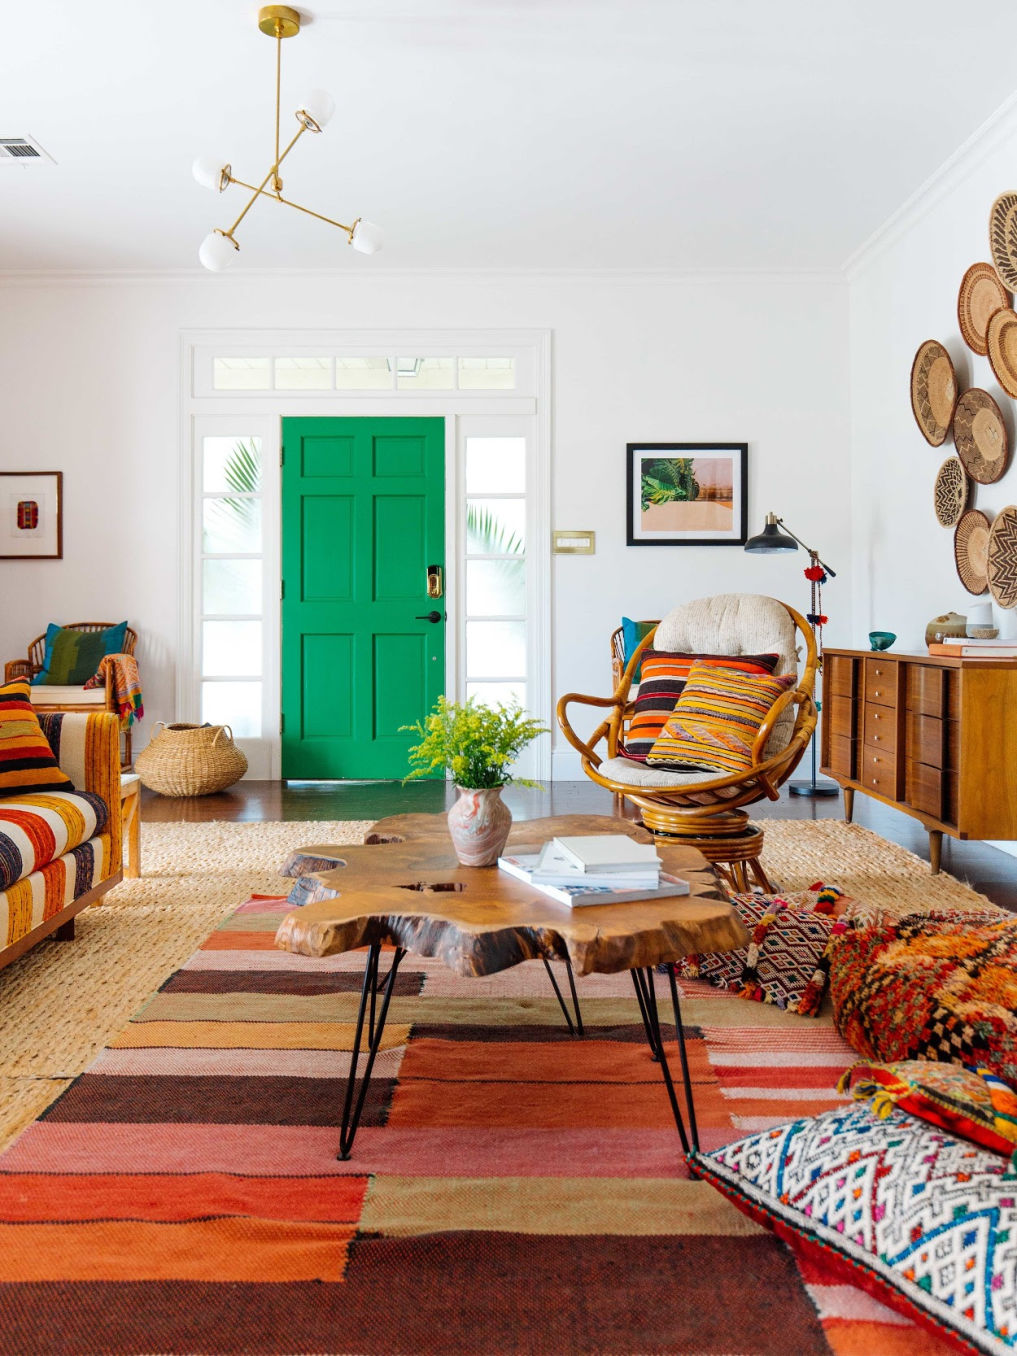 Eclectic Home Tour Oid Brand New Kelly Elko